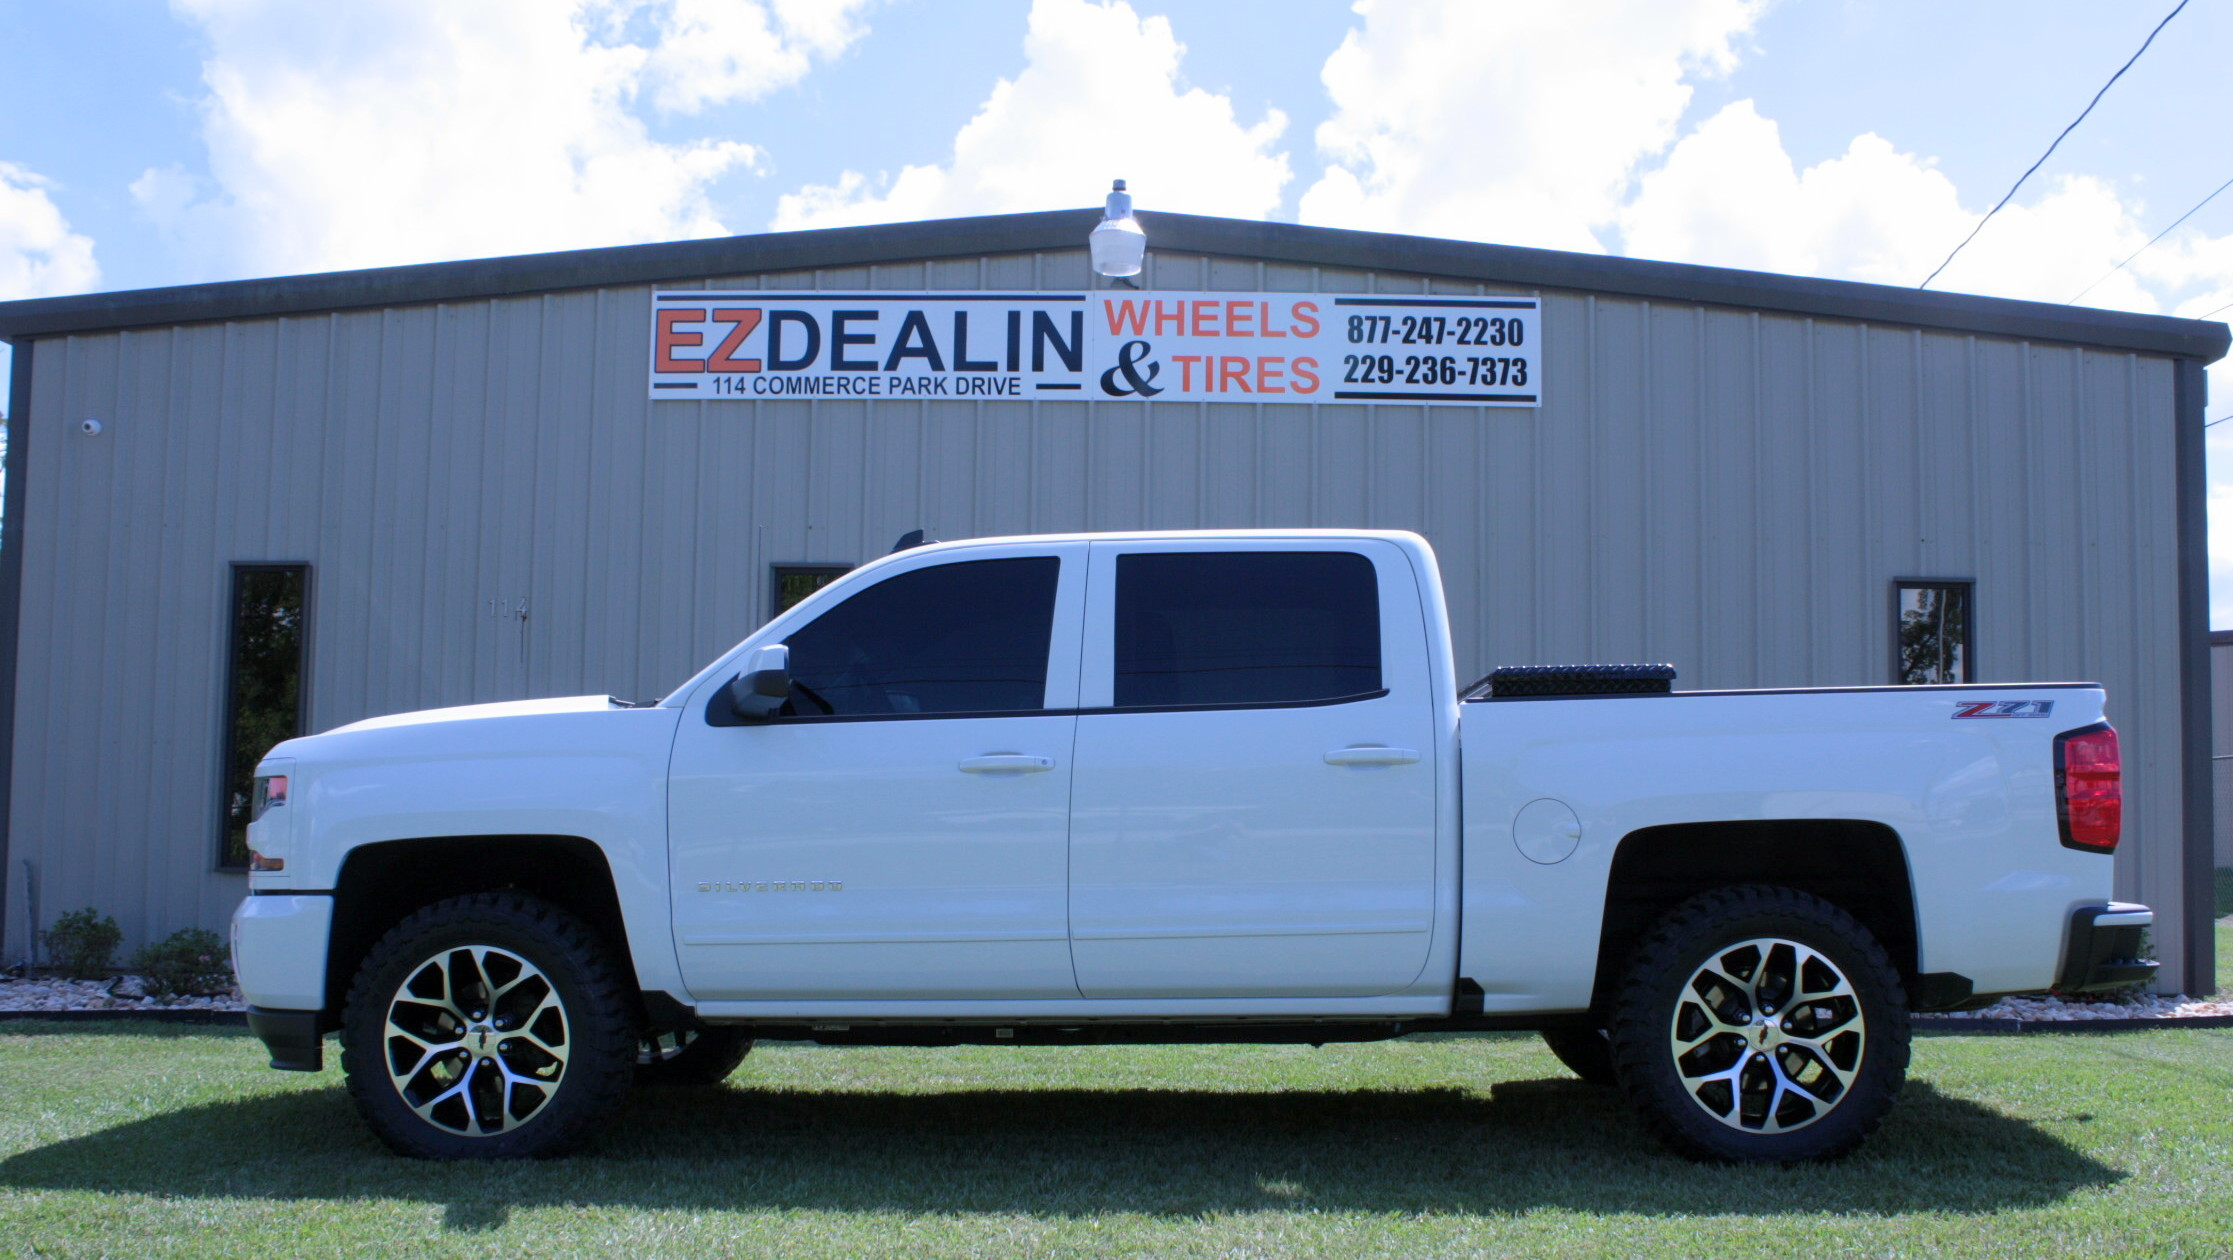 Riding in Style with new EZDealin Wheels and Tires